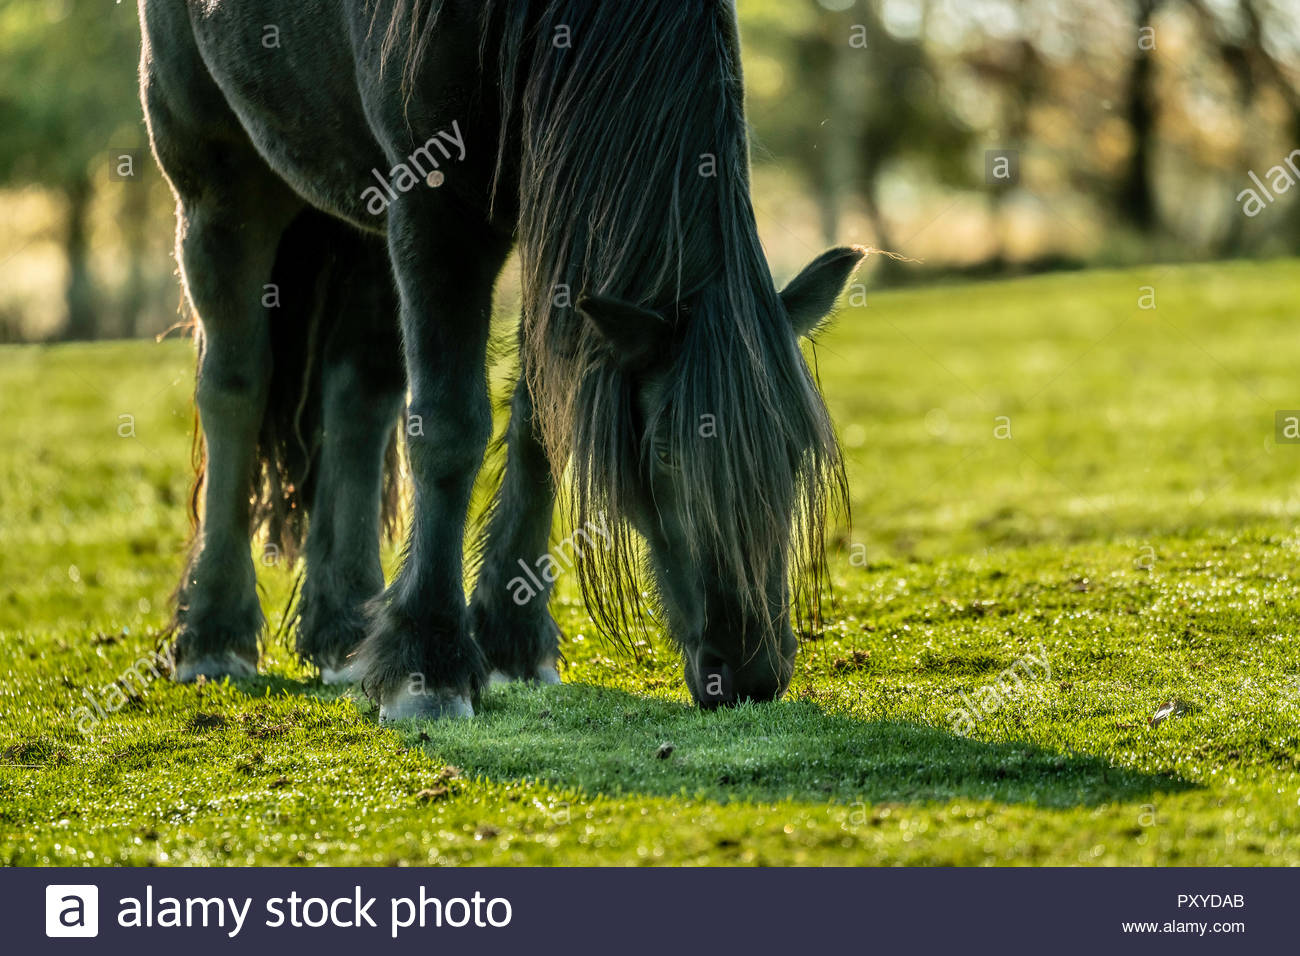 Towford, Jedburgh, Scottish Borders, UK. 15th October 2018. Fell Ponies graze in the autumn sunshine at Towford Farm in the foothills of the Cheviots  - Stock Image